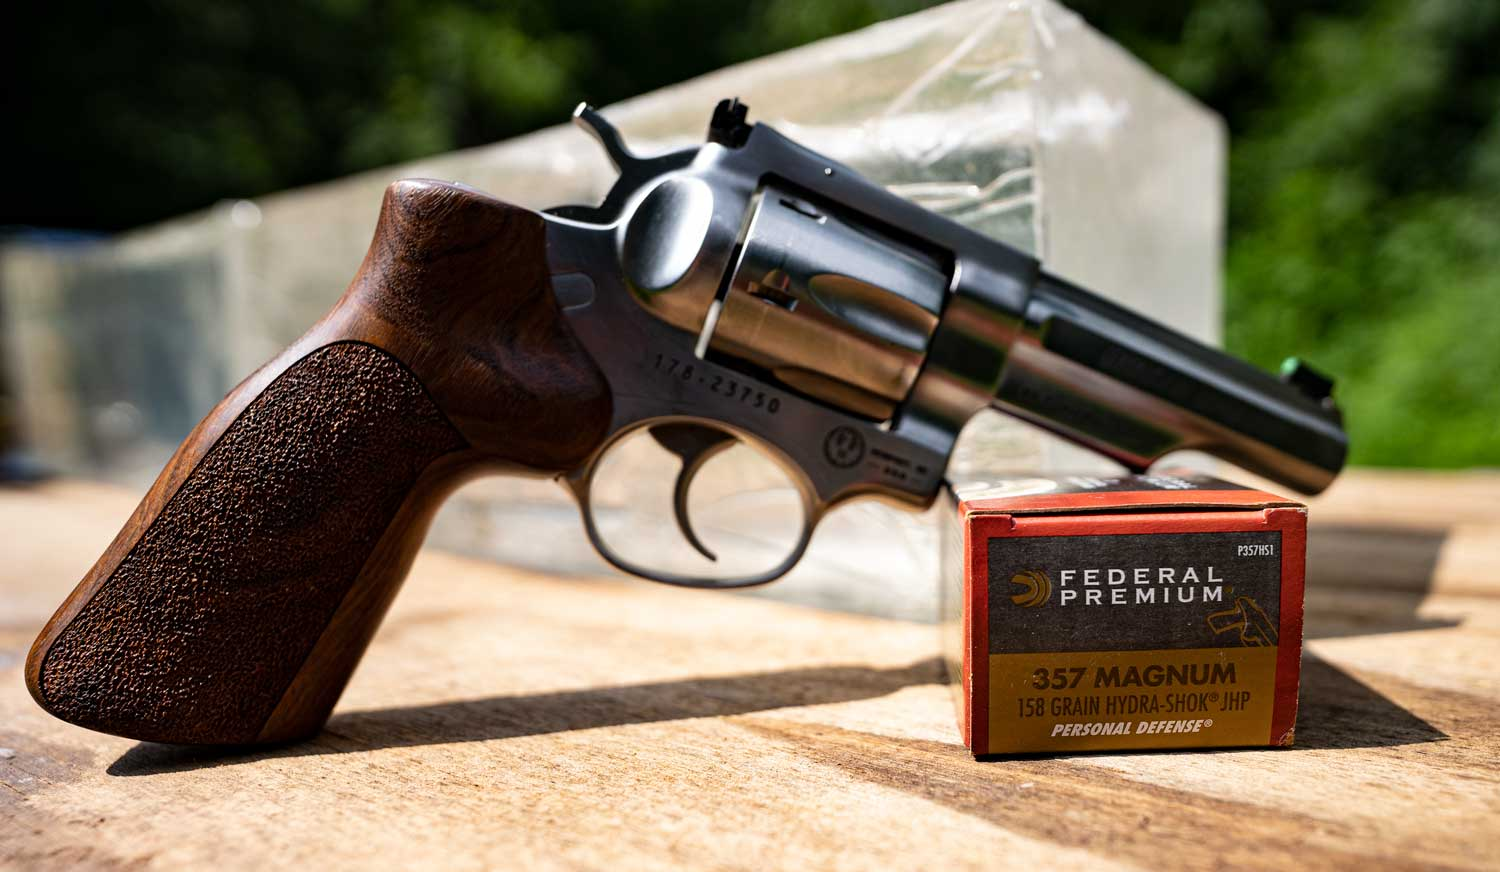 357 magnum revolver with ammunition